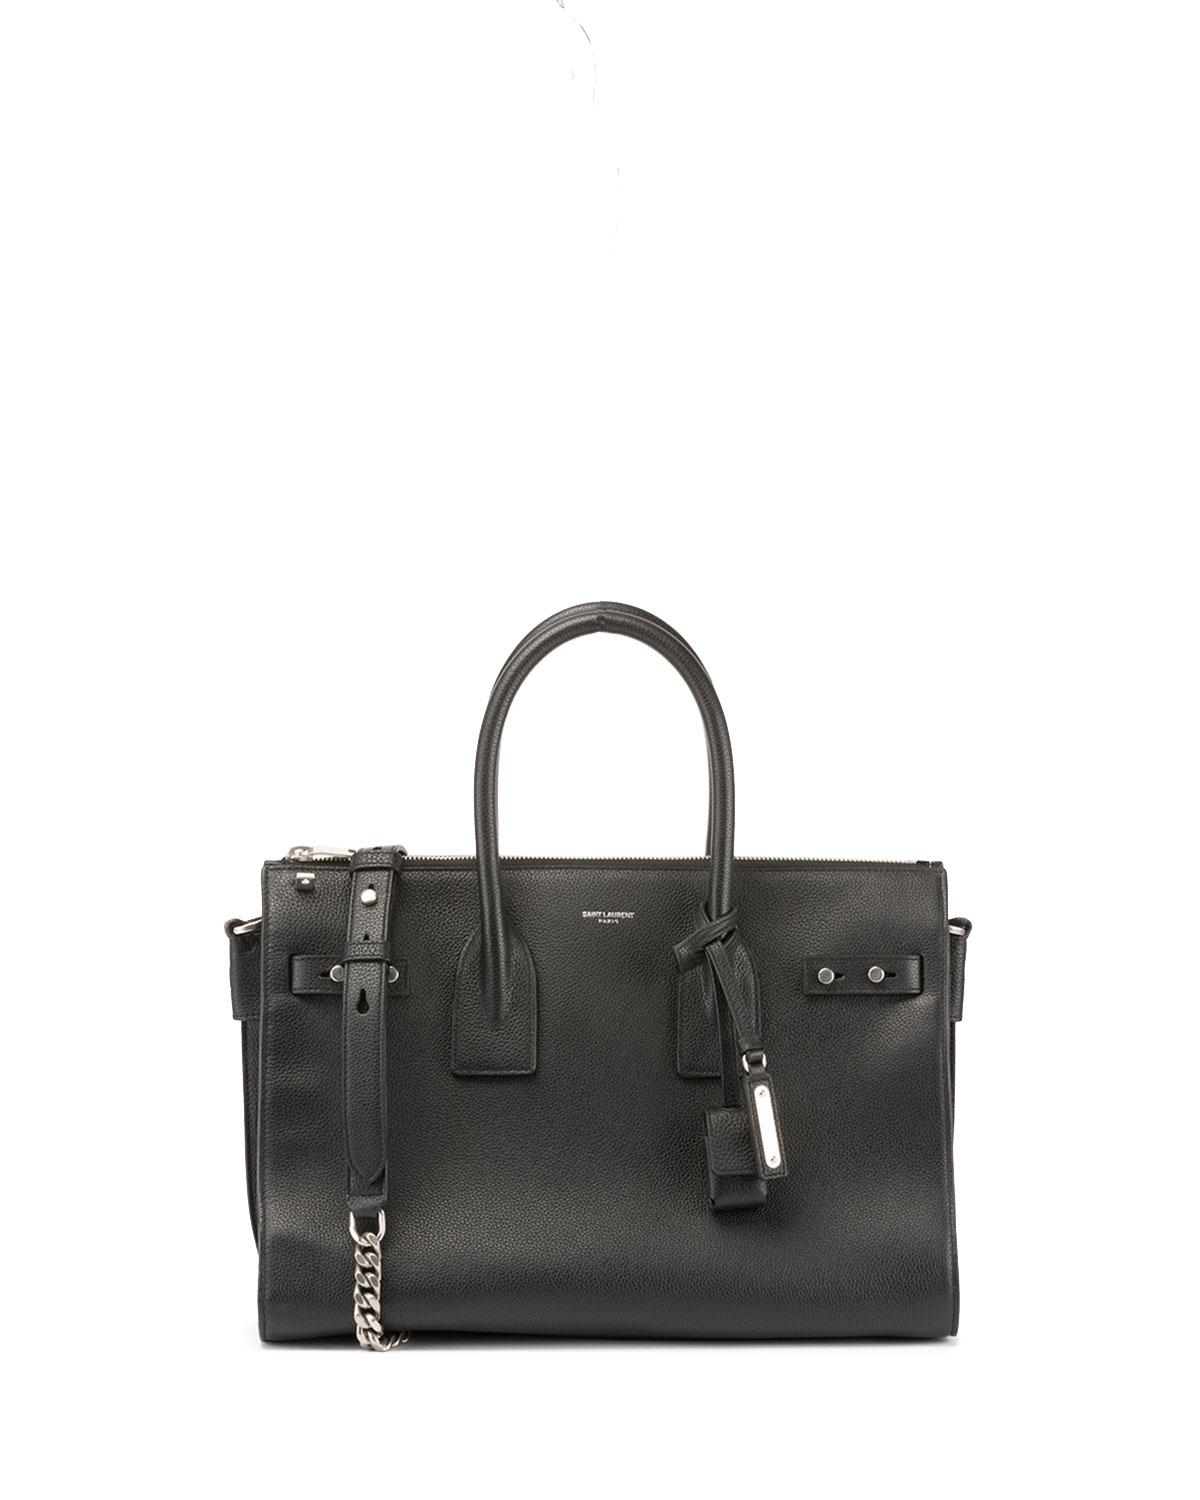 27ed936d7d00 Saint Laurent Sac de Jour Small Supple Leather Duffel Bag